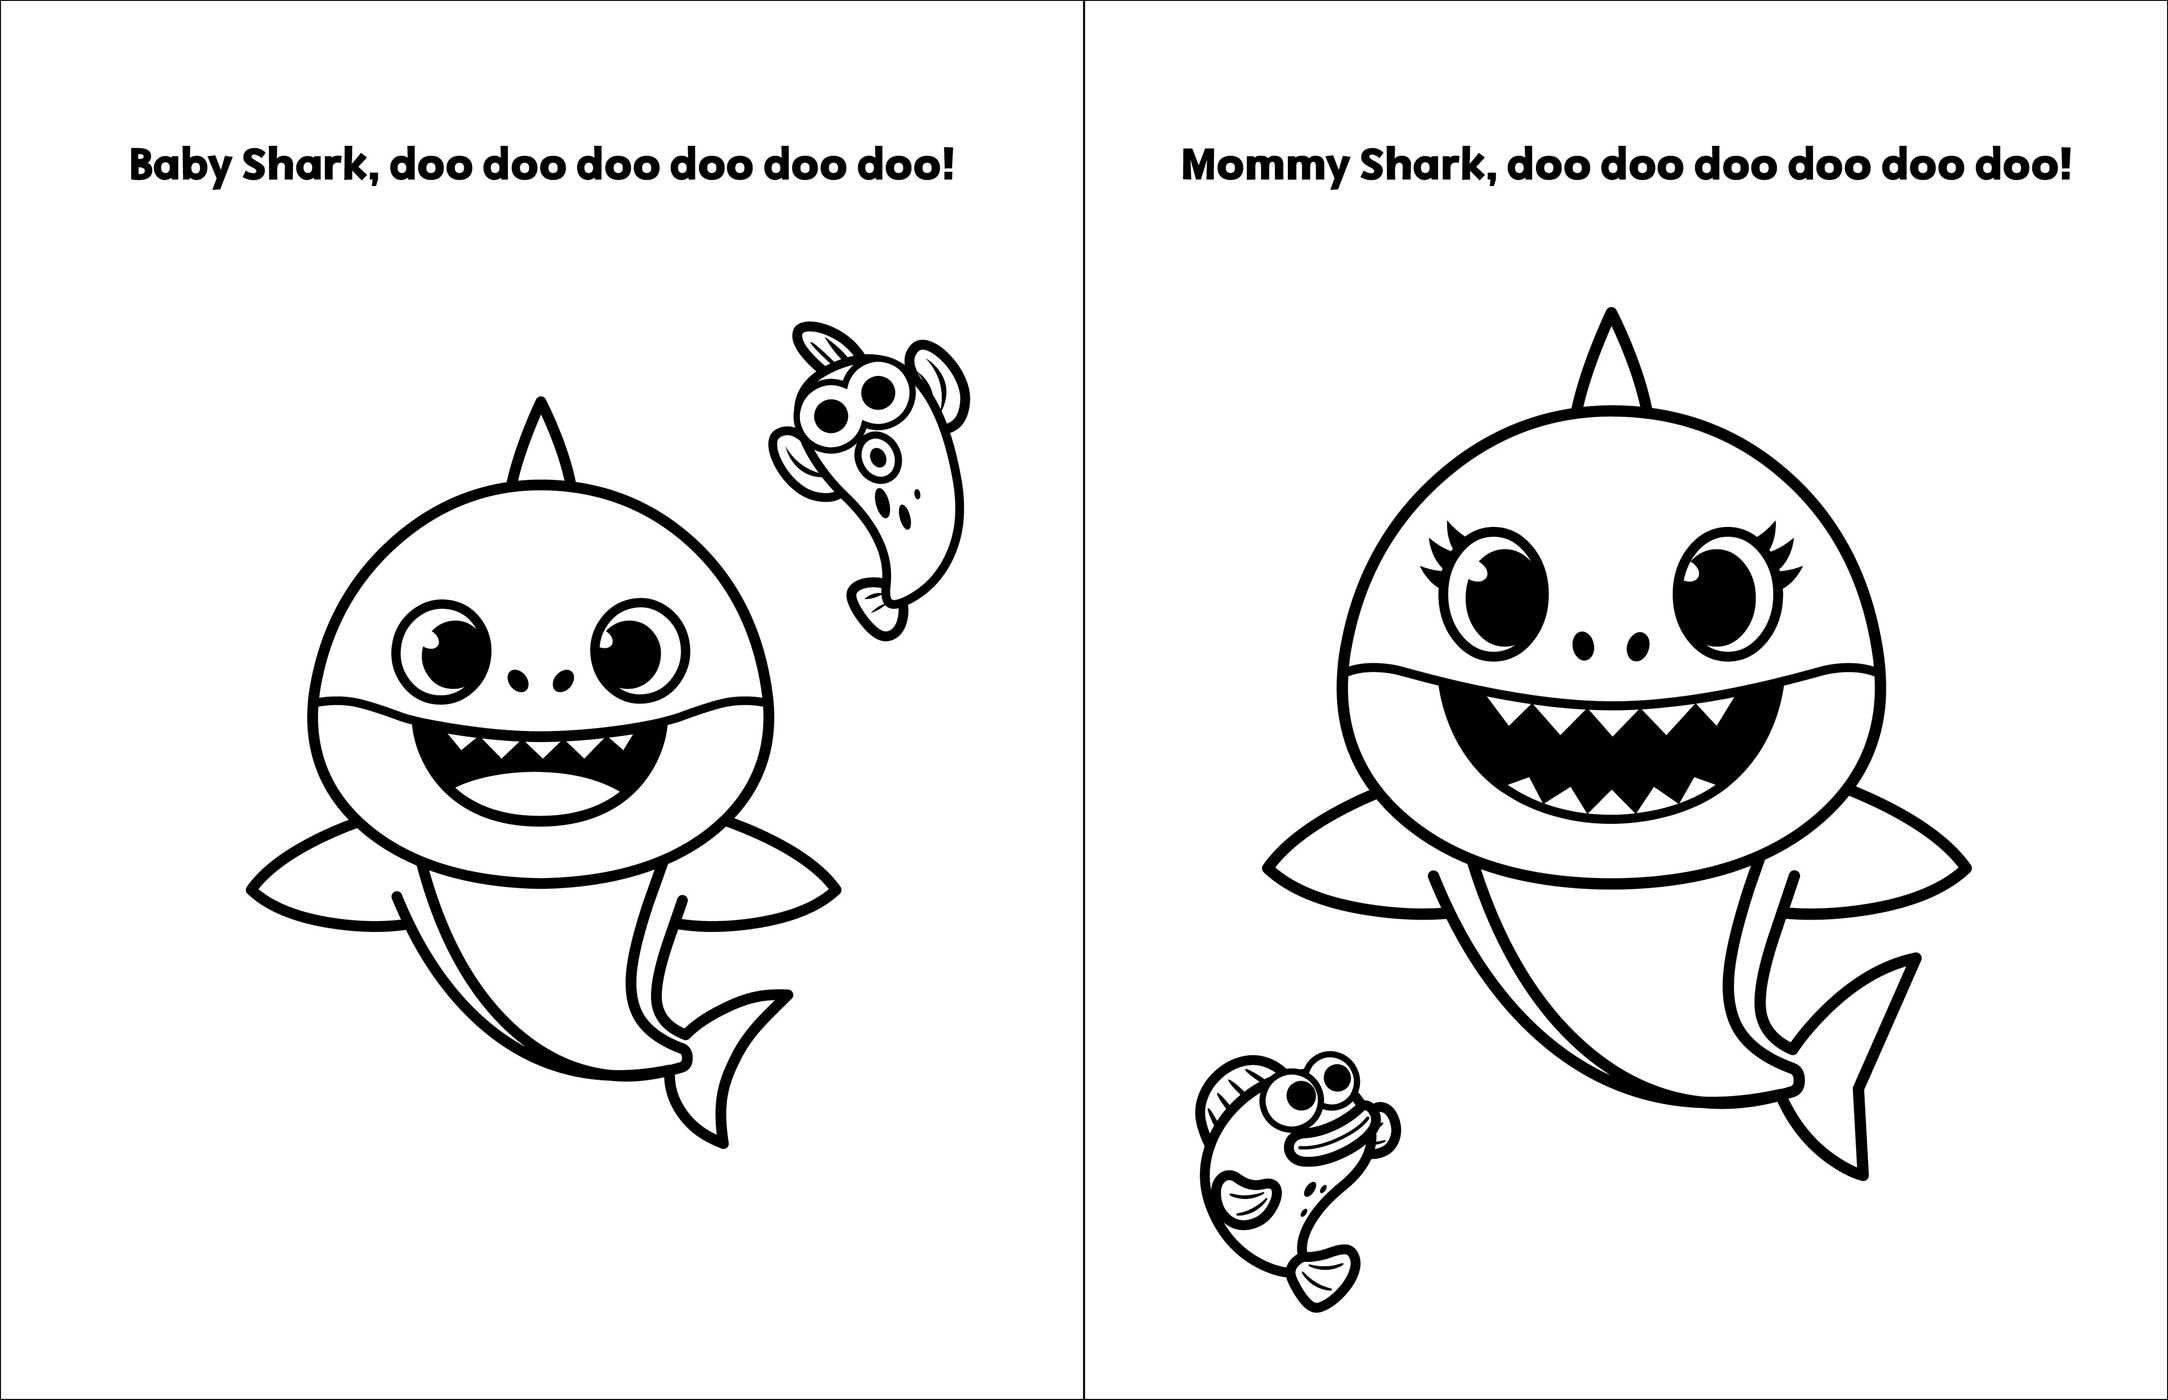 baby shark coloring pages pinkfong baby shark coloring sheet for kids pages coloring shark baby